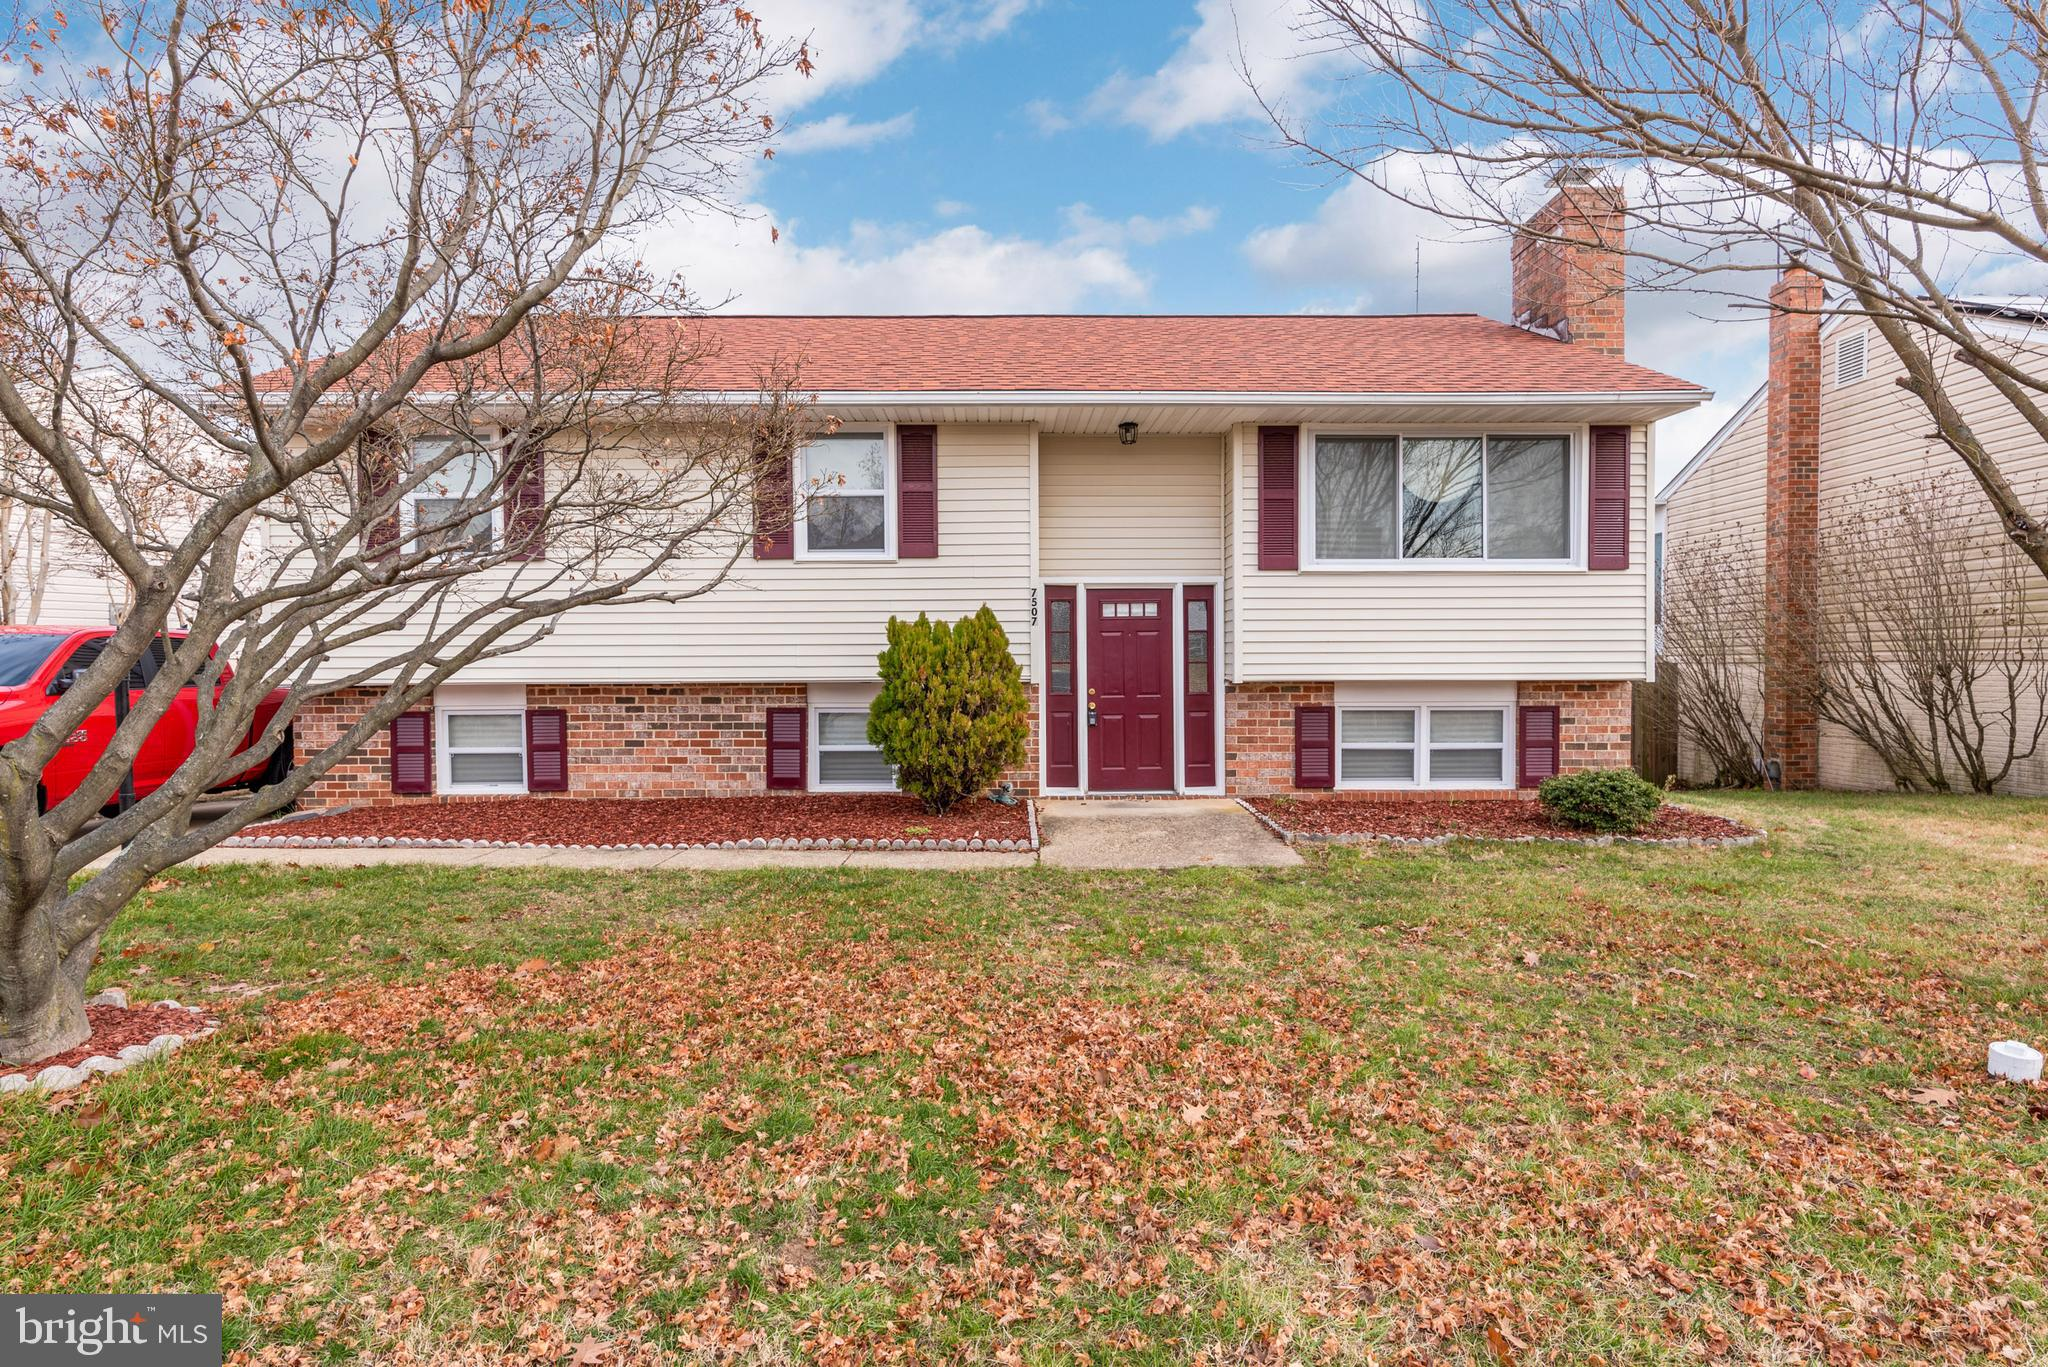 This charming  5 bedroom 3 bath single family home features recent updates throughout including a re